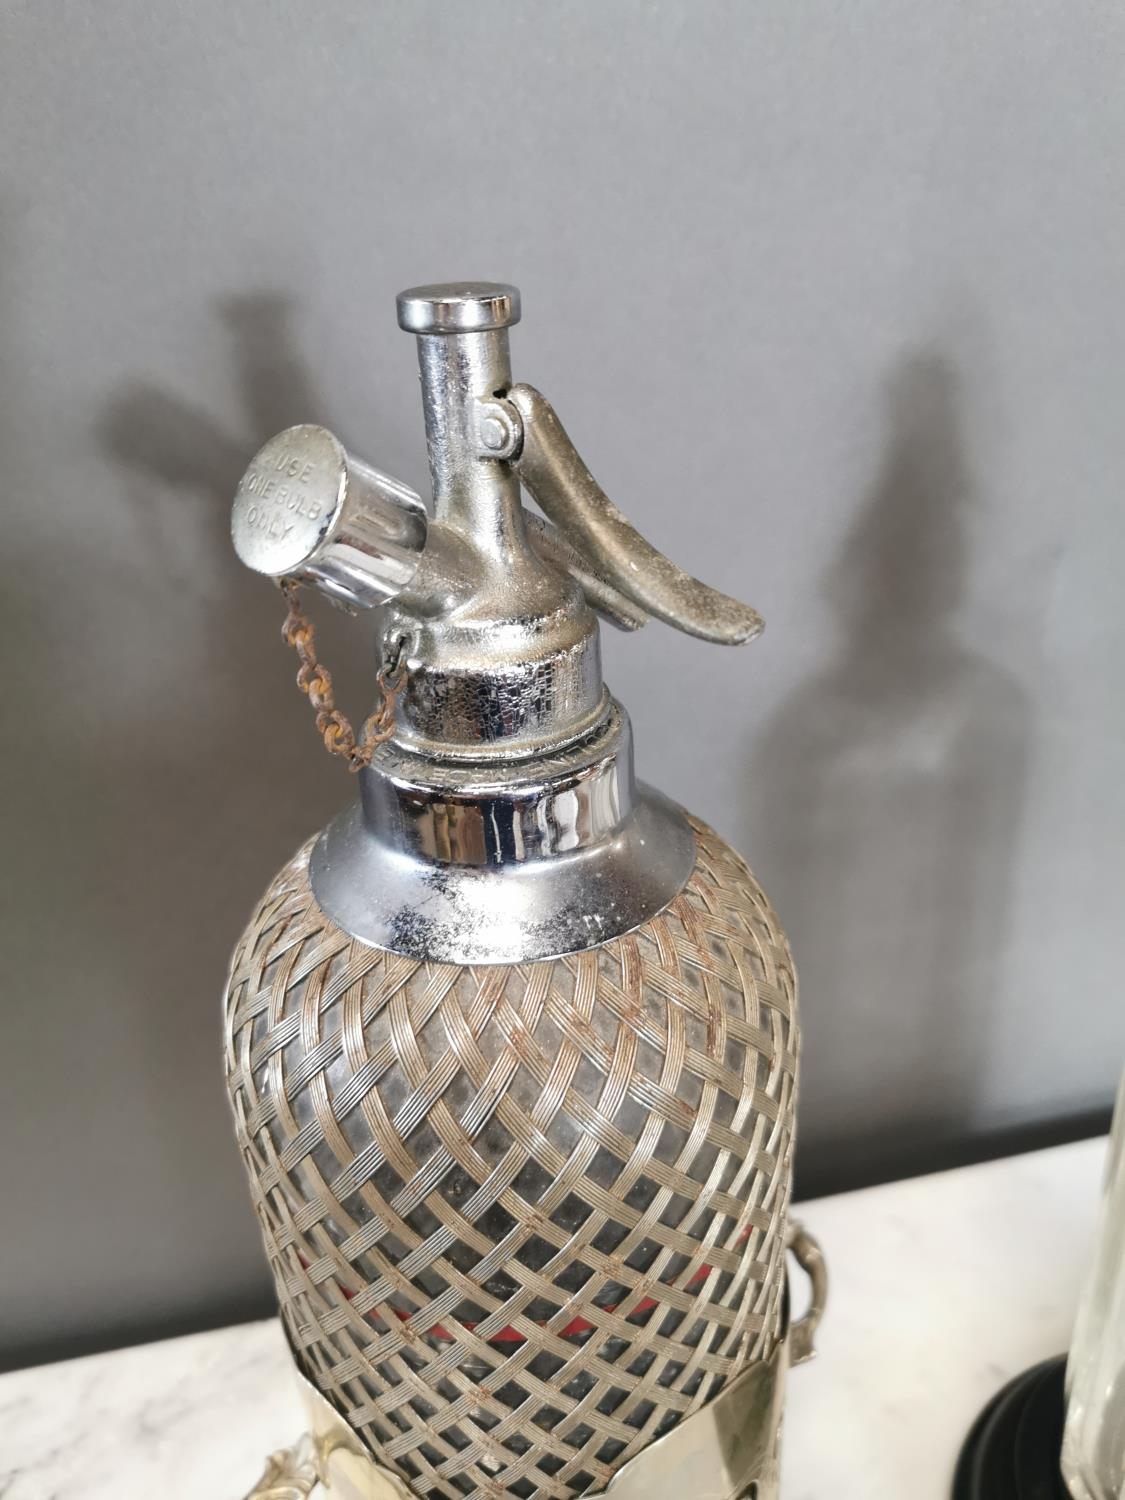 Early 20th. C. silverplated syphon - Image 3 of 3